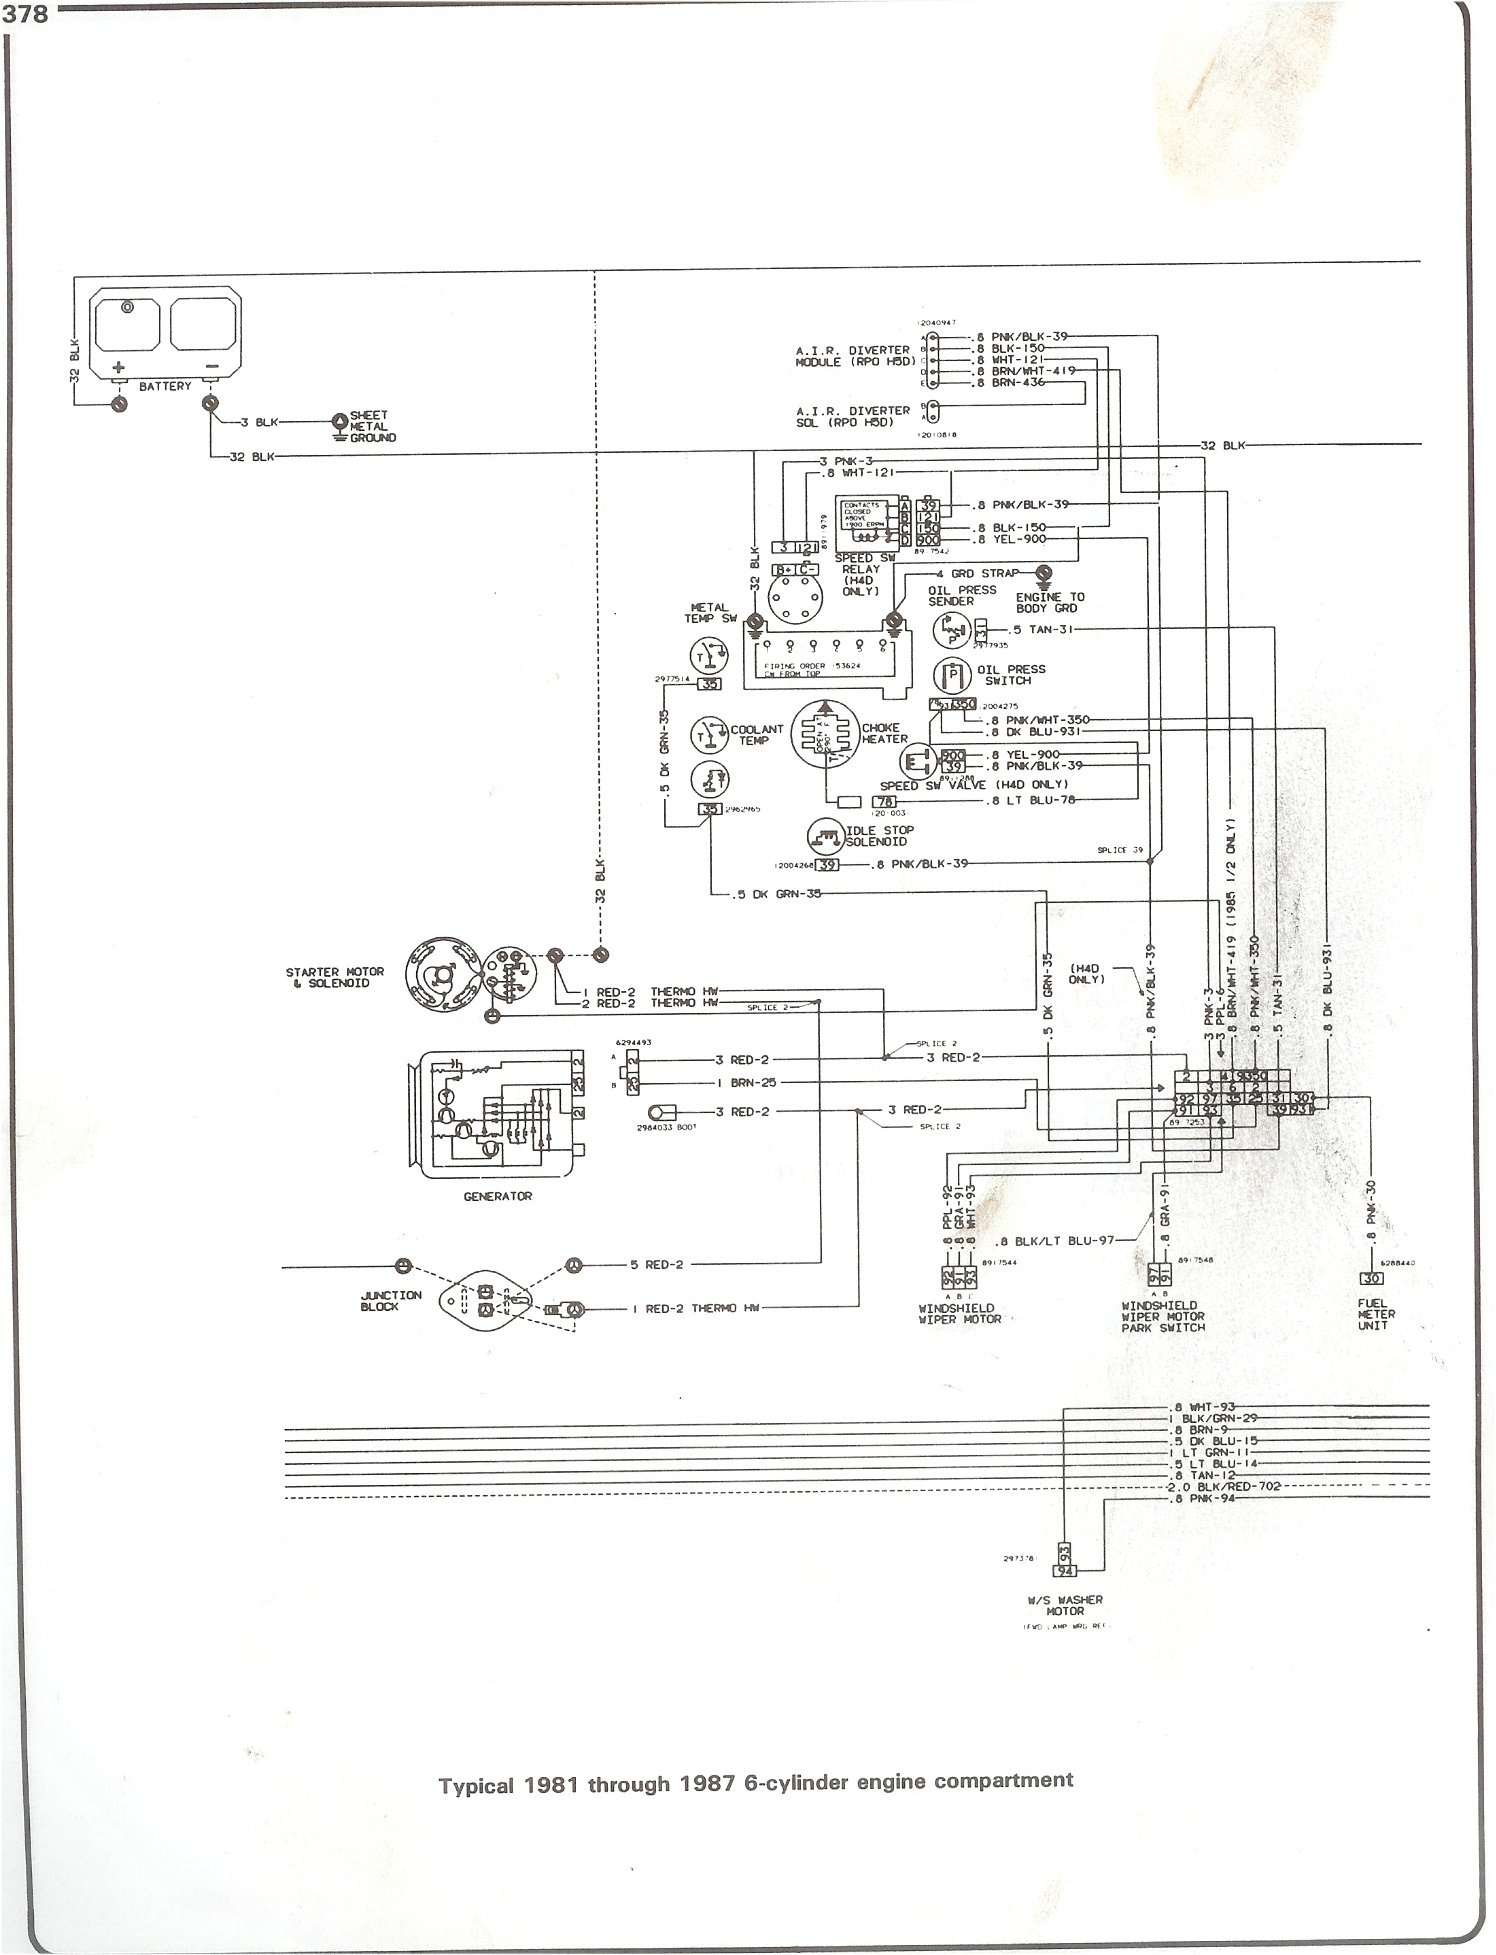 1973 Camaro Fuse Block Diagram Trusted Wiring 1981 Box 1969 Corvette Dash On Gm